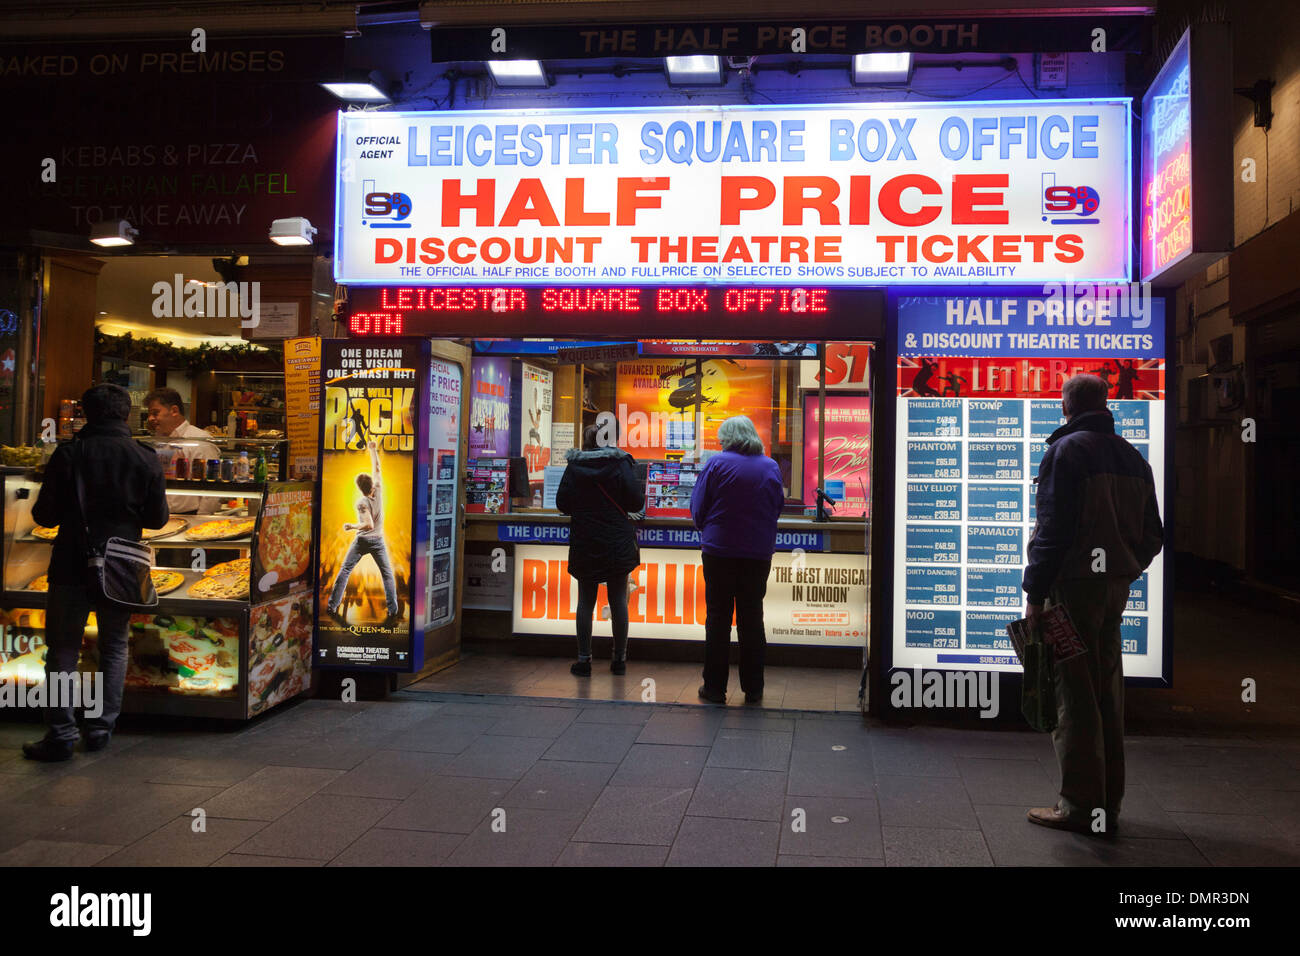 Leicester Square Box Office, Half Price Discount Theatre Tickets, London, England, United Kingdom Stock Photo